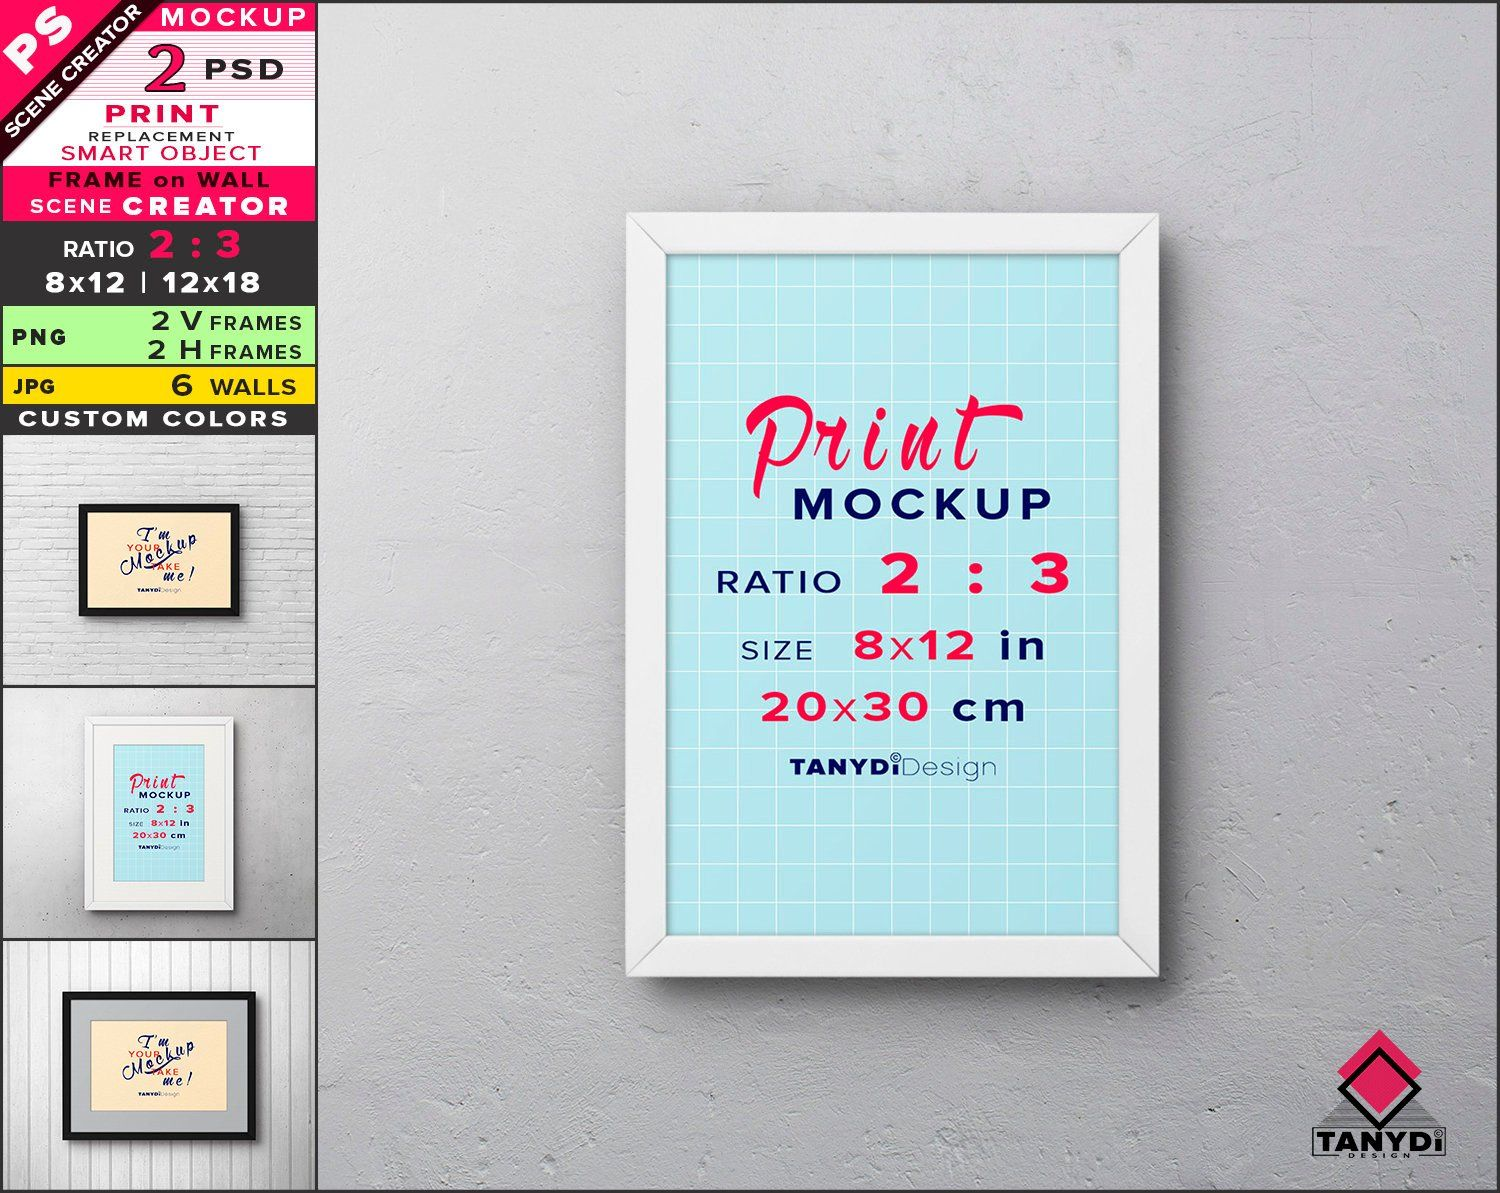 8x12 Frame On Wall Photoshop Print Mockup Vertical Horizontal Png Metal Frame 12x18 Smart Object Mock Up Scene Creator F 23 W 1 Scene Creator Frames On Wall Print Mockup